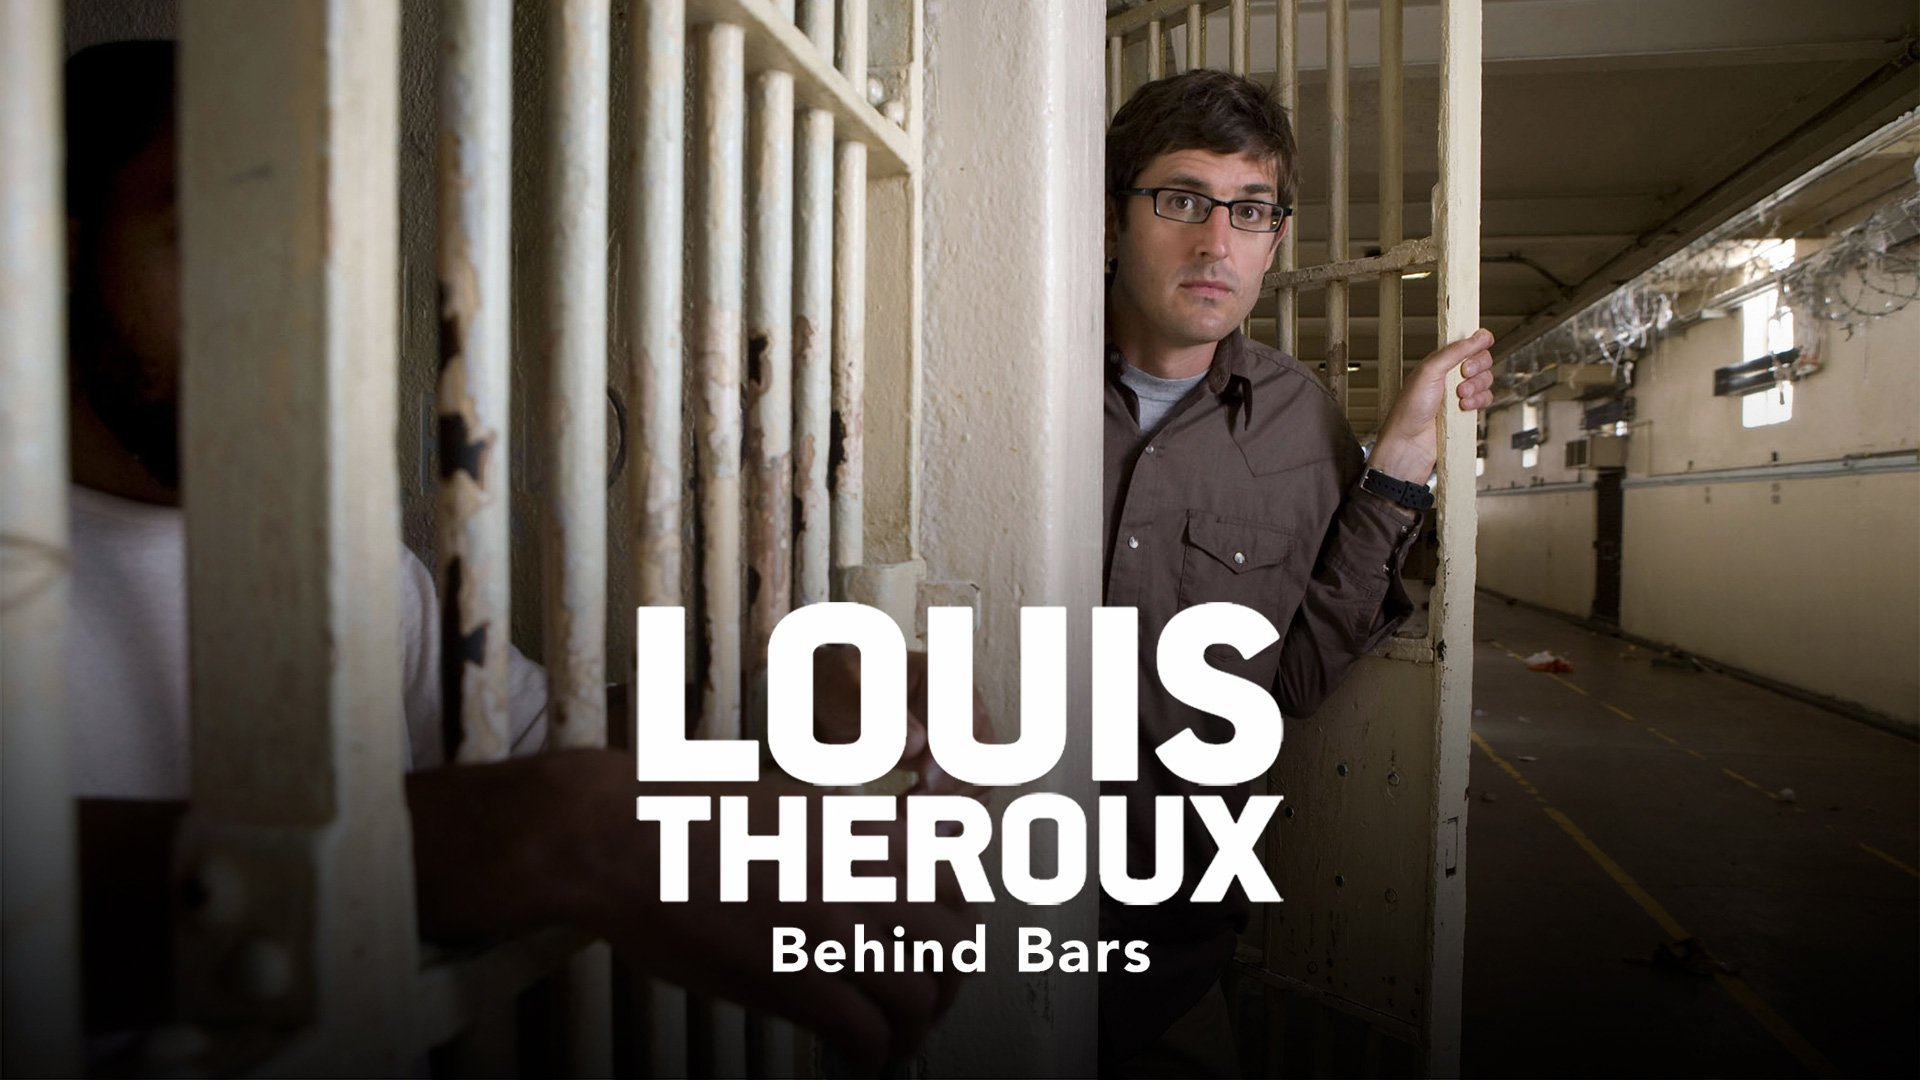 Louis Theroux: Behind Bars on BritBox UK